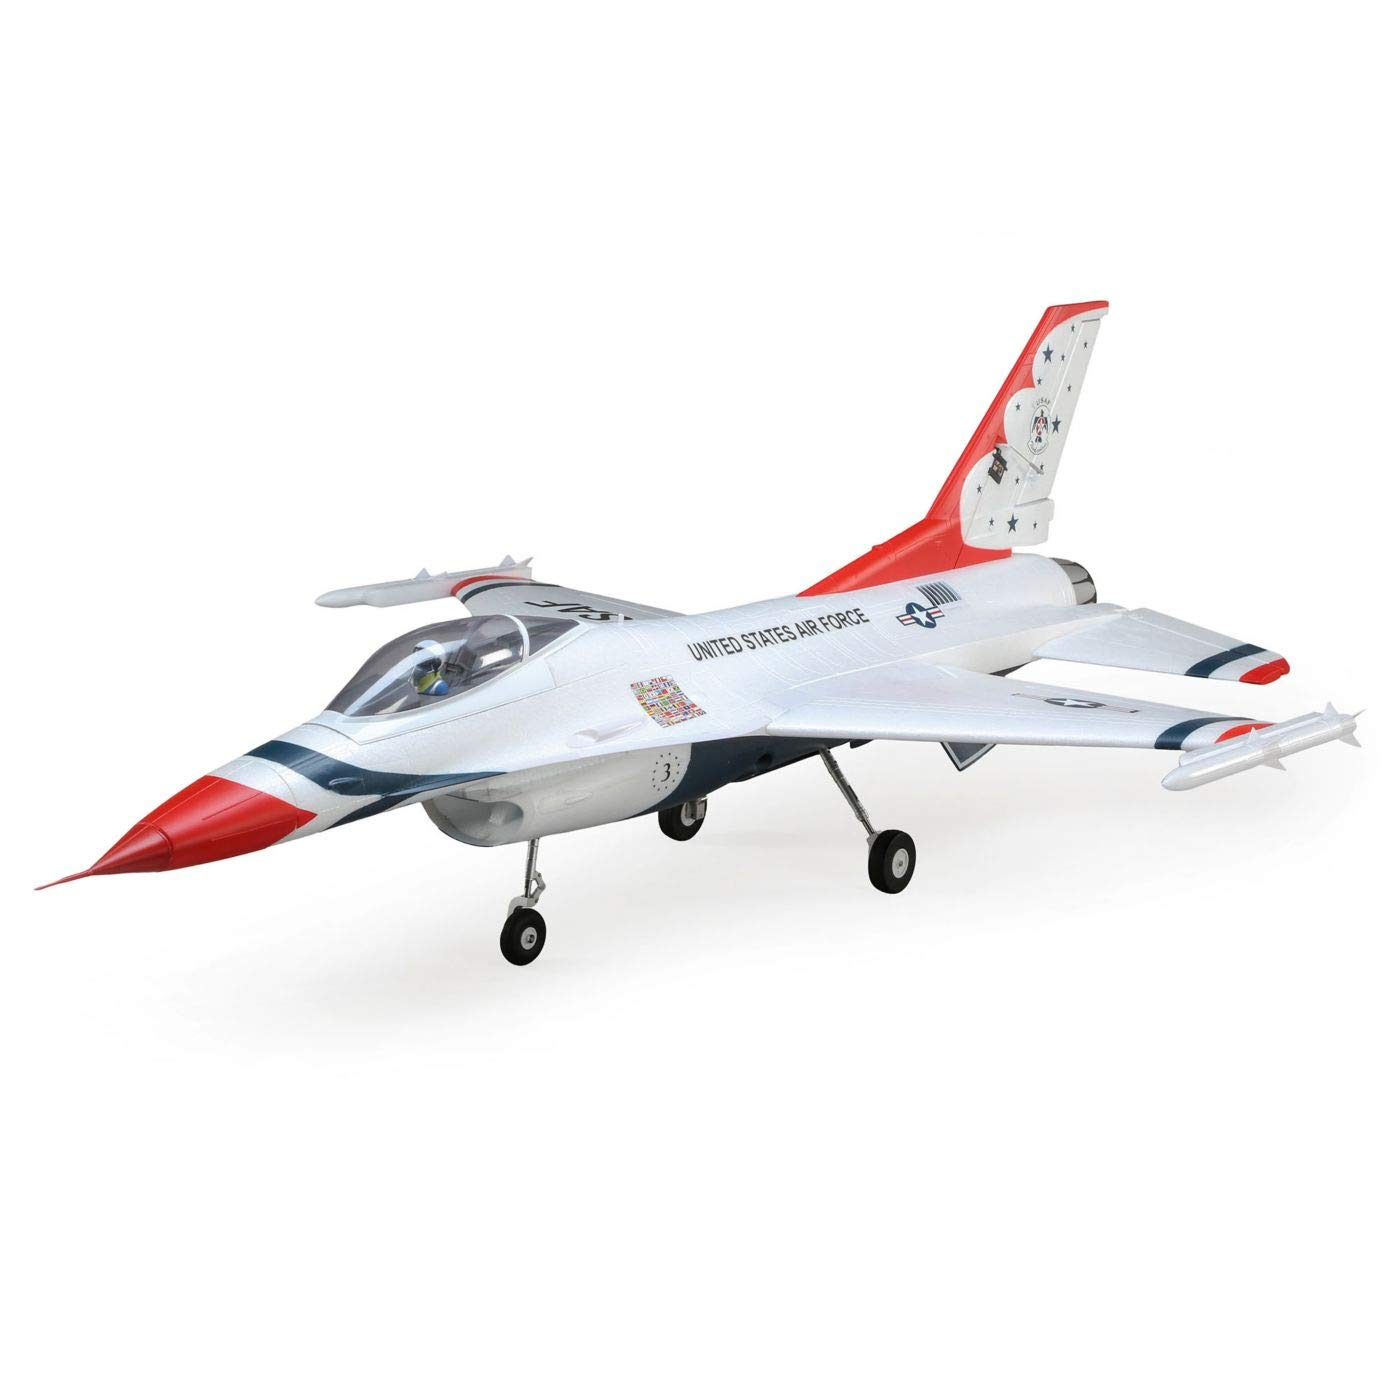 E-flite RC Airplane F-16 Thunderbirds 70mm EDF BNF Basic (Transmitter, Battery and Charger not Included) with AS3X and Safe Select, 815mm, EFL7850